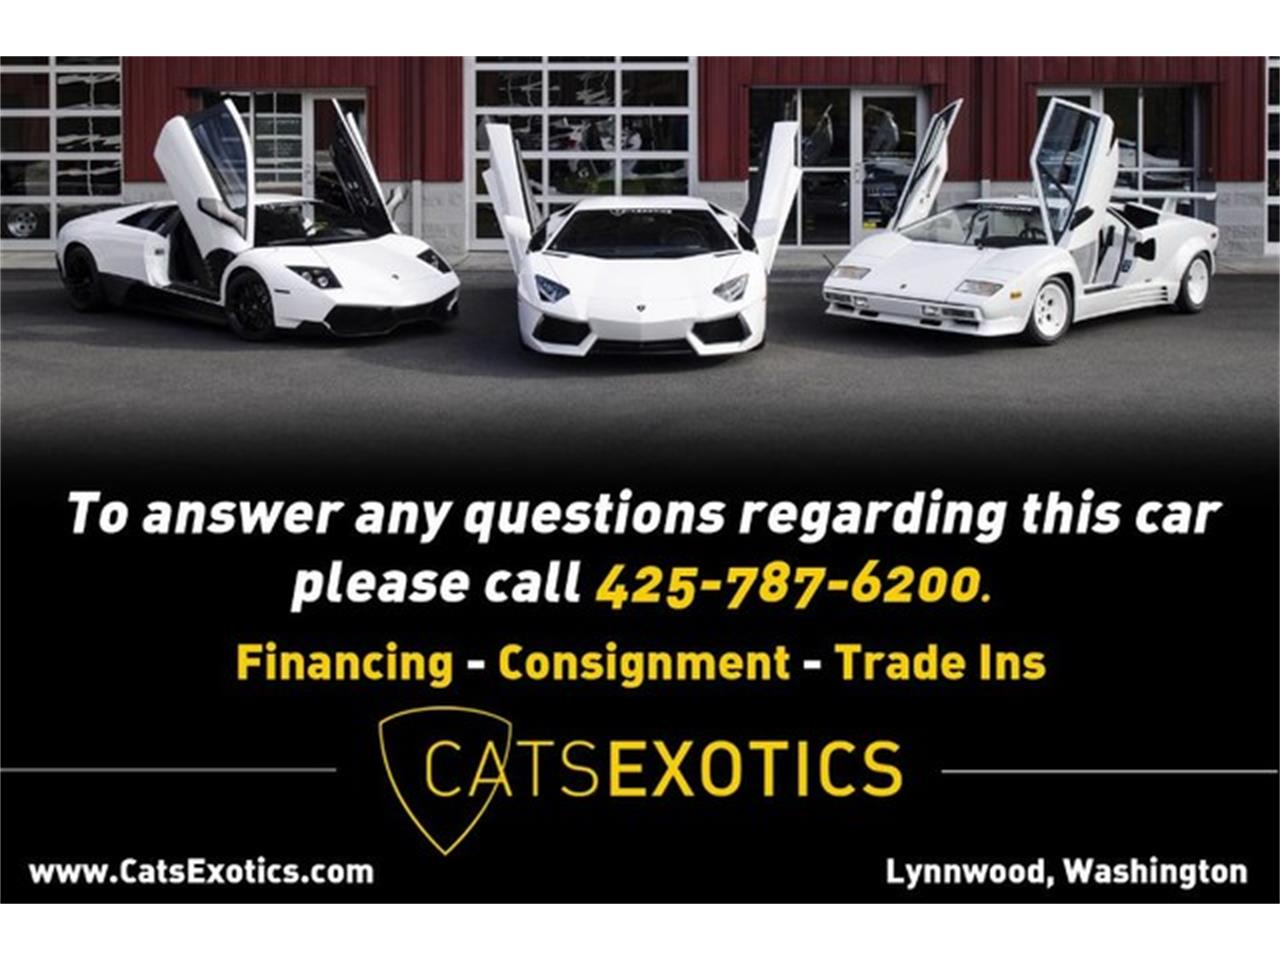 Large Picture of '98 Lamborghini Diablo Auction Vehicle Offered by Cats Exotics - HZIS